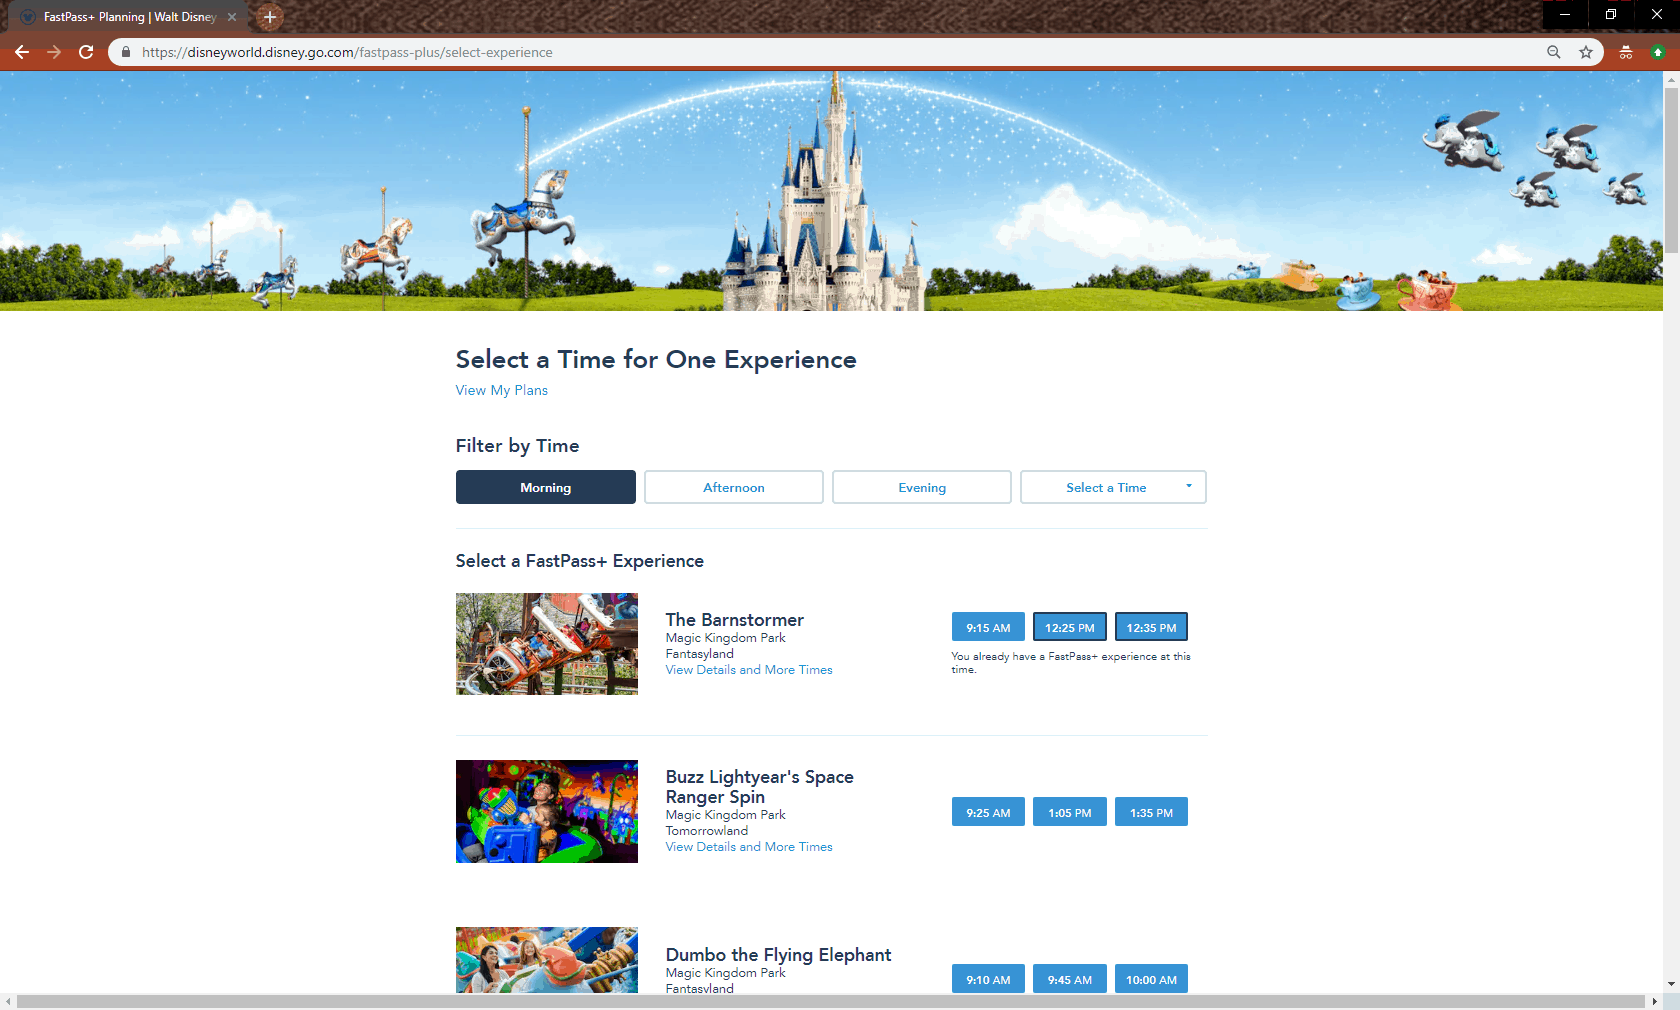 FastPass+ select attraction